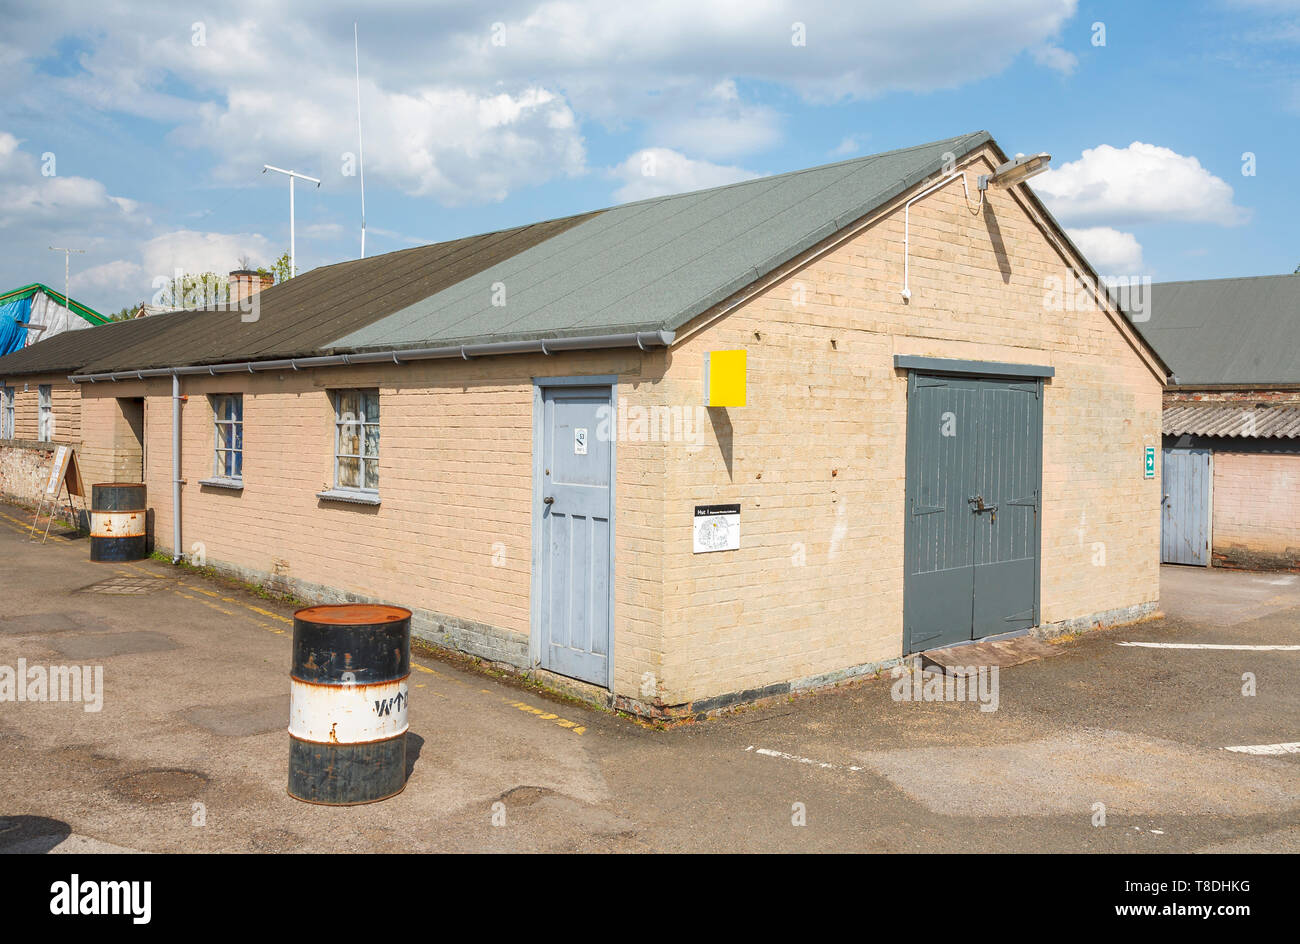 Hut 1 at Bletchley Park, once the top-secret home of the World War Two Codebreakers, is now a leading heritage attraction - Stock Image